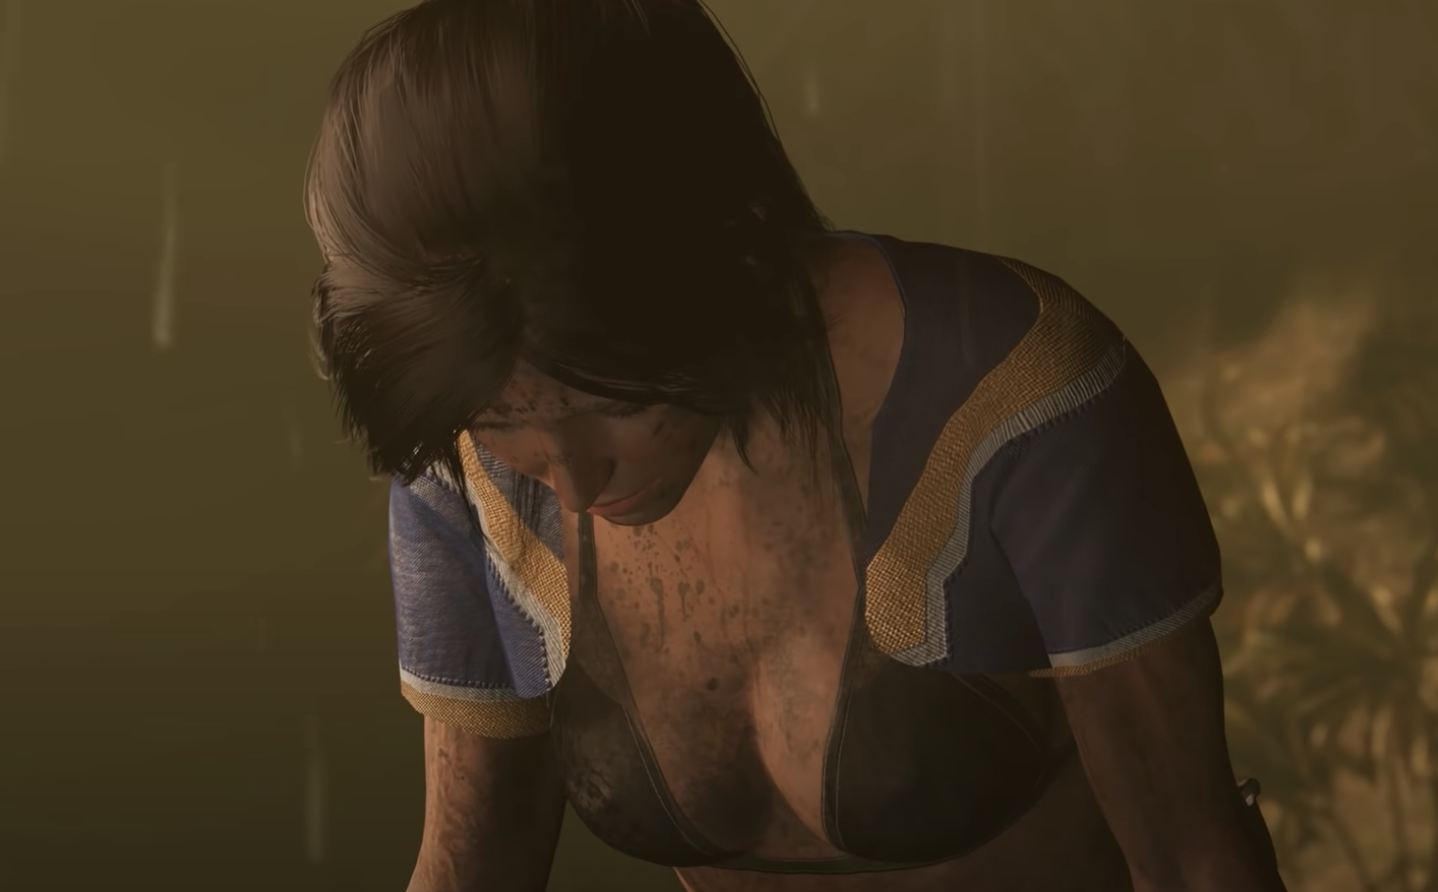 The main character from Tomb Raider bending down